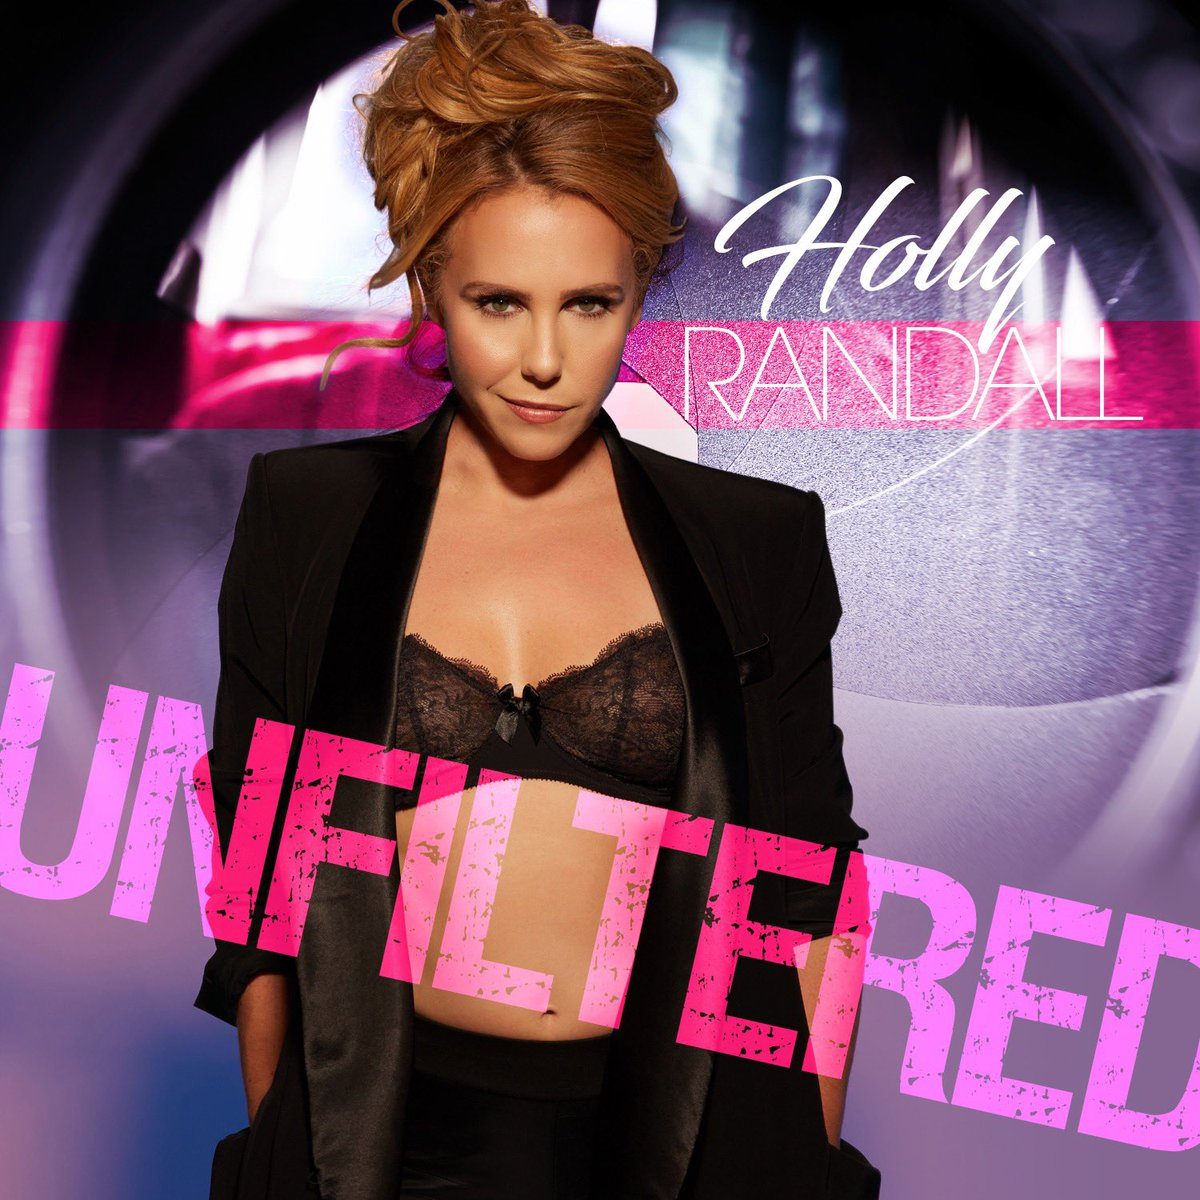 test Twitter Media - Have you checked out my latest interview for @hollyrandall's podcast yet? Listen now to hear what Holly and I got up to! Link🔗➡️https://t.co/17dqH06wfO #hollyrandallunfiltered https://t.co/YKtRoXhvuR